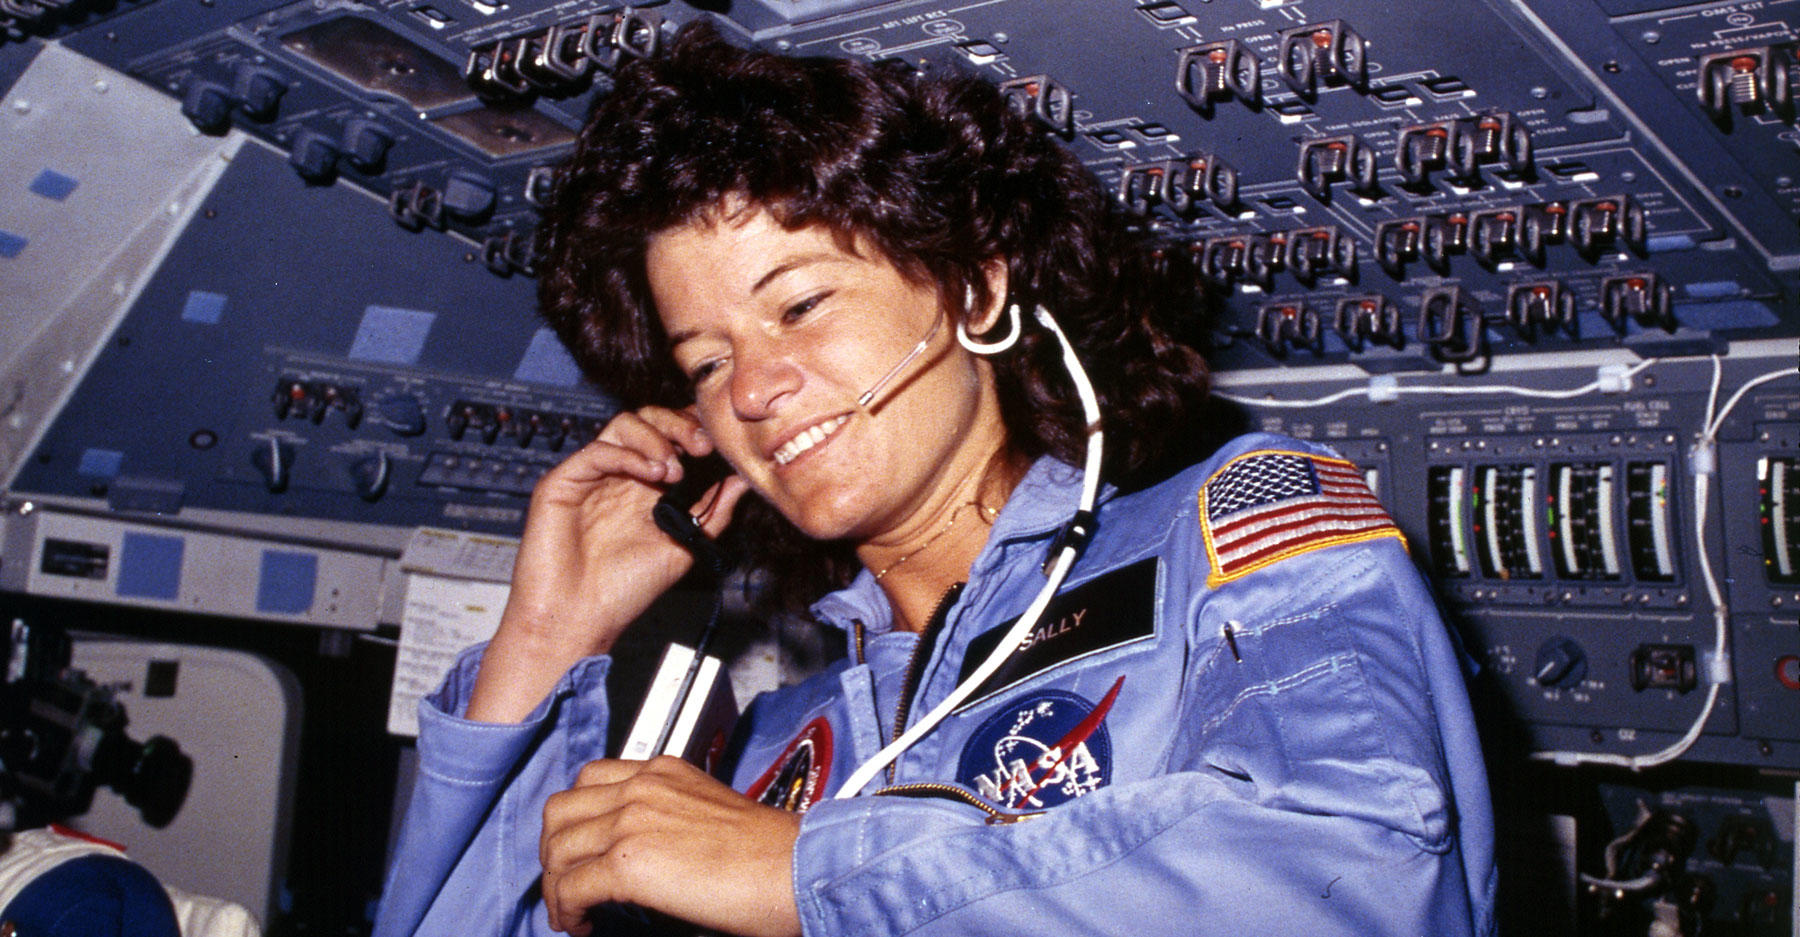 astronaut in space today - photo #14